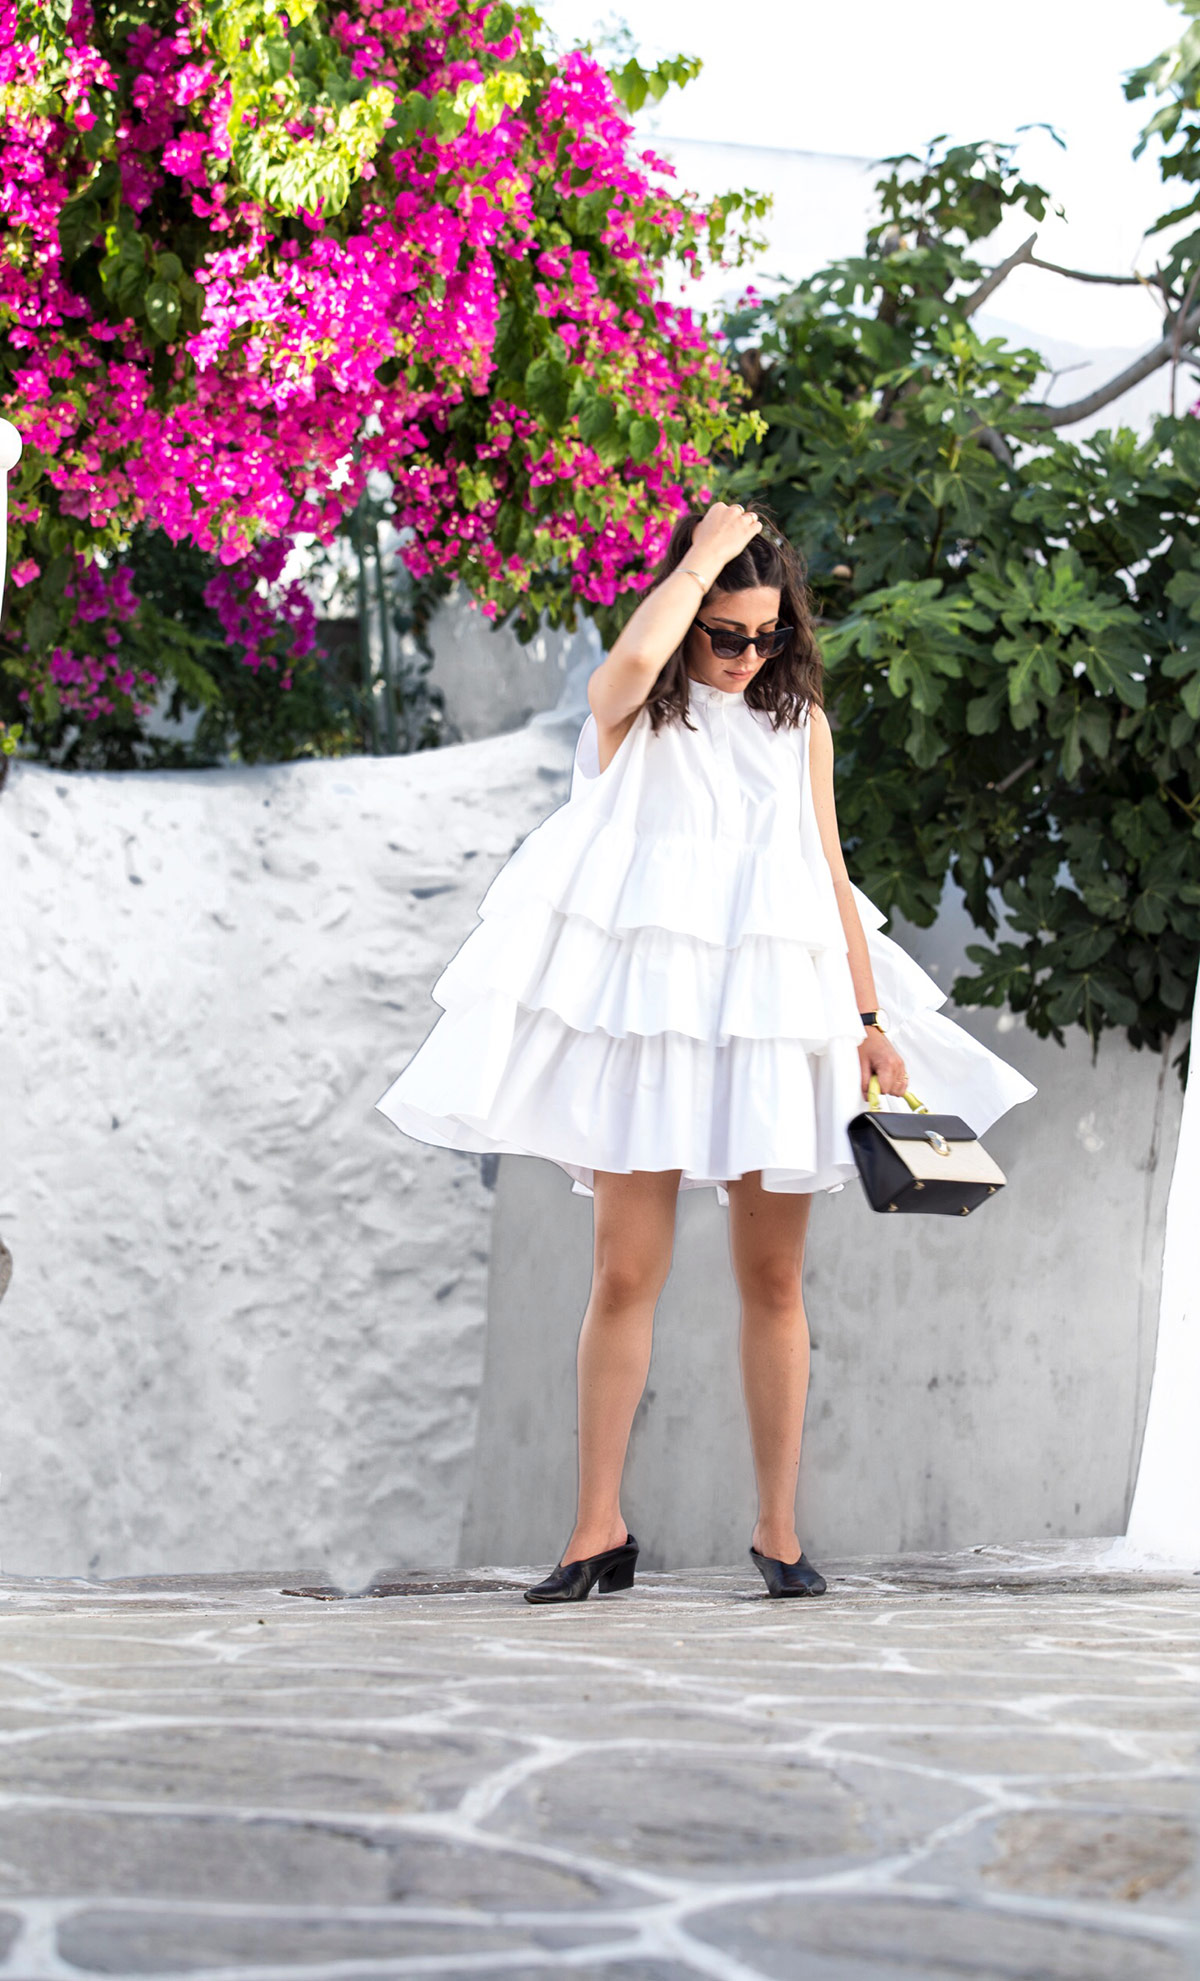 Stella Asteria wearing a little white frilled dress in Mykonos